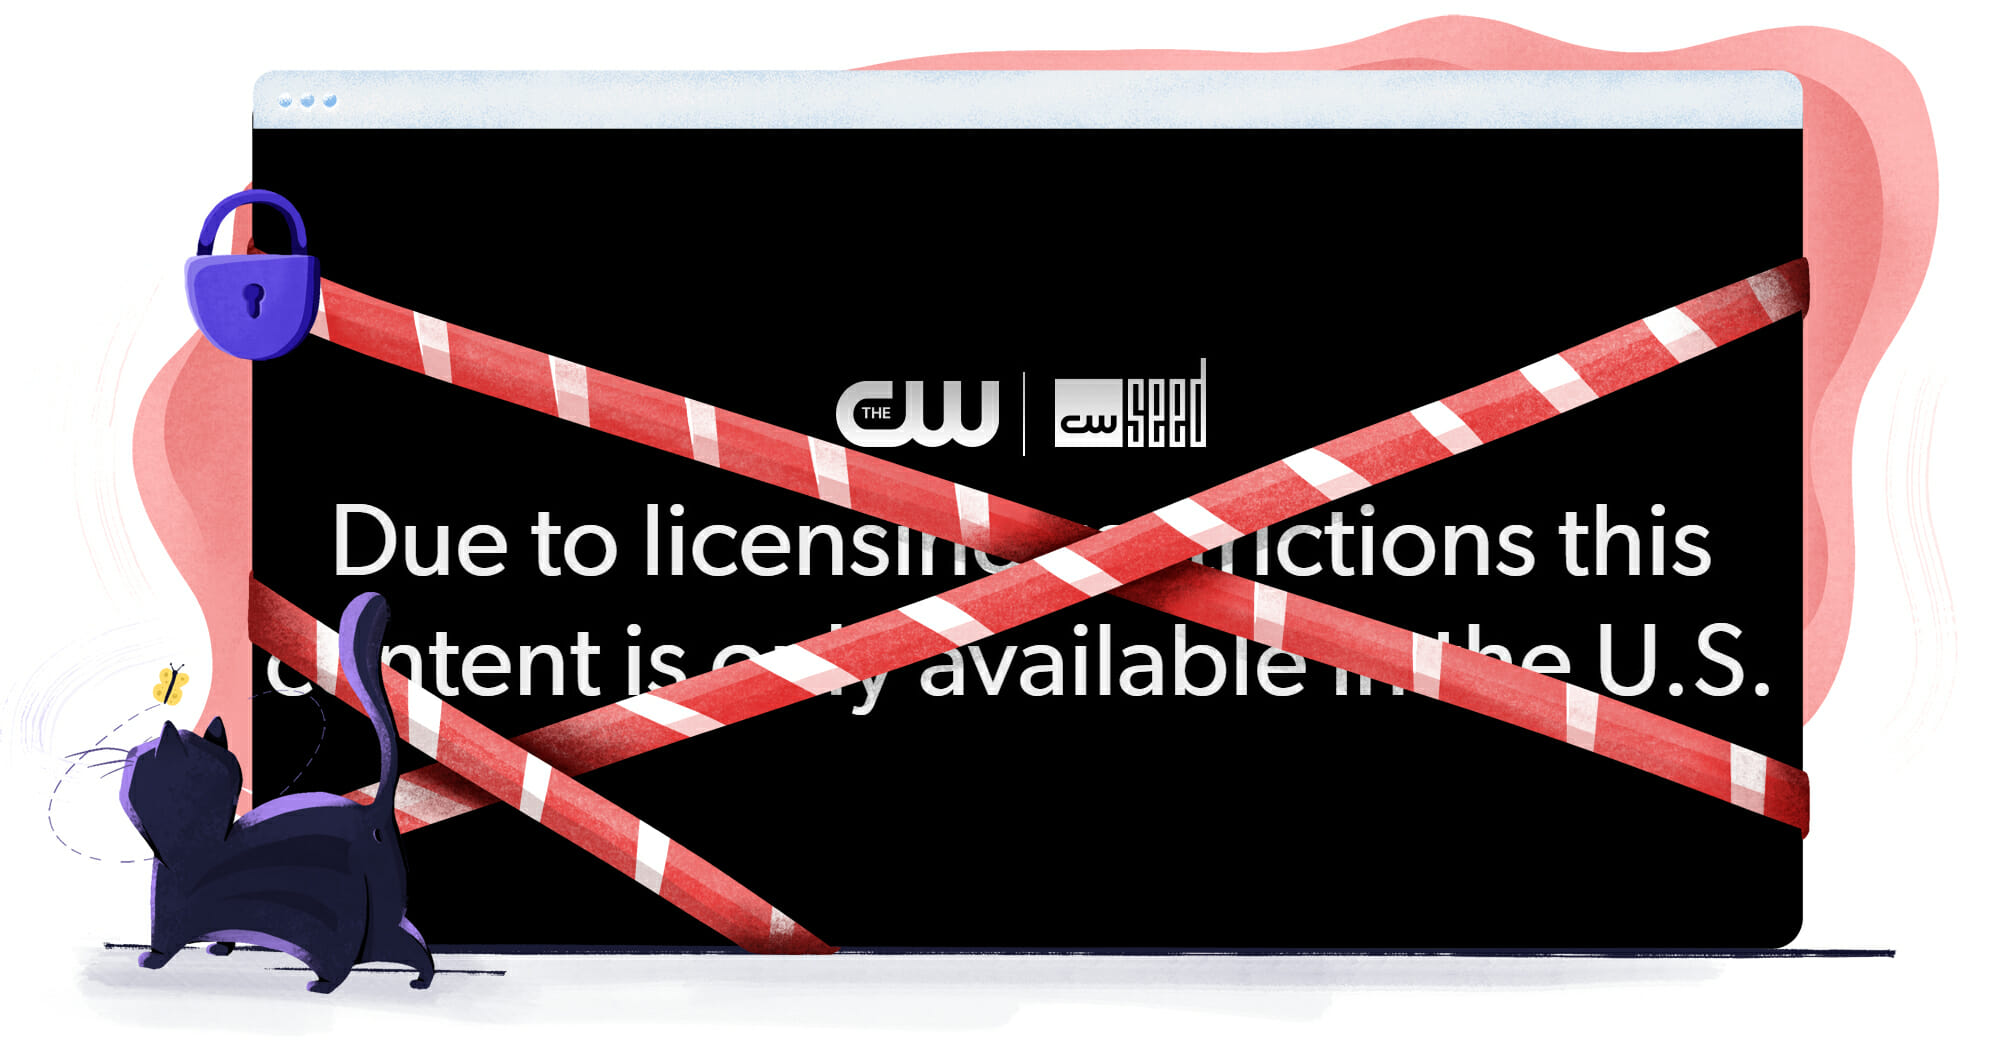 CW and CW Seed not available outside the US